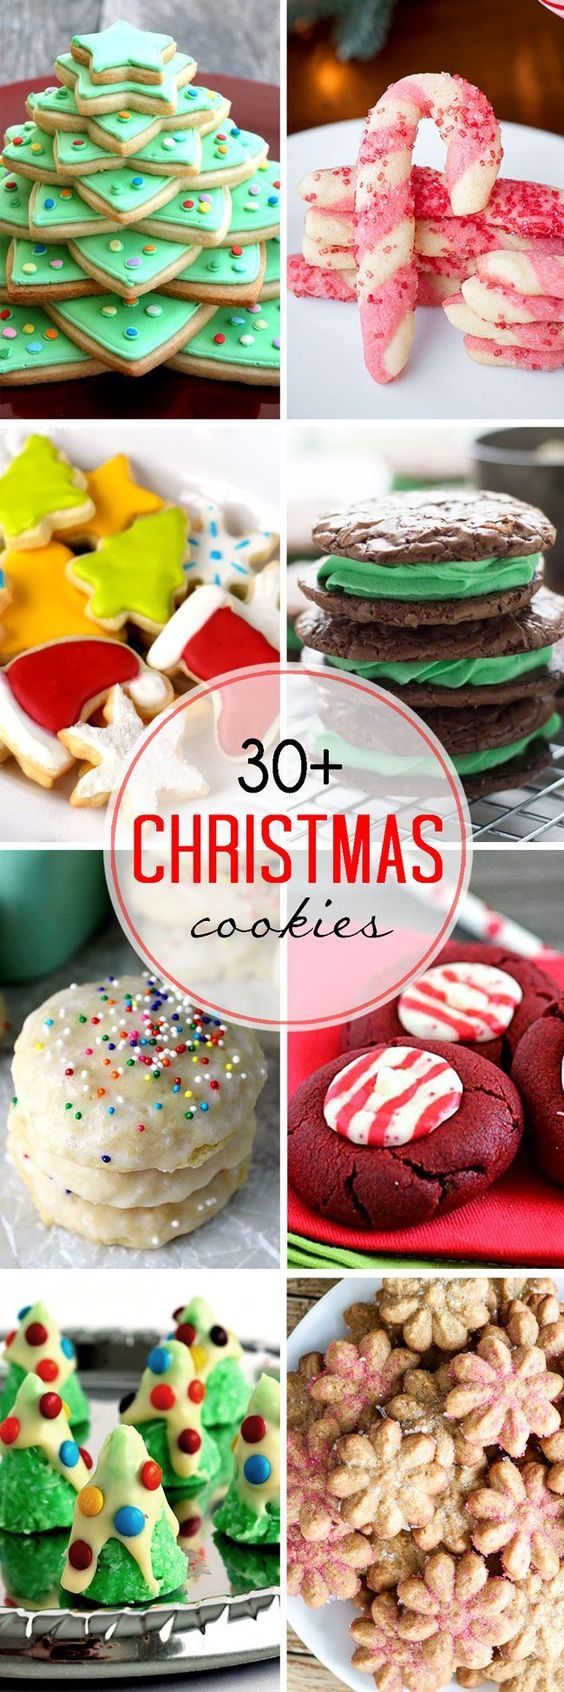 30+ Christmas Cookies - these holiday cookie recipes are perfect for Santa, edible gifts, parties, potlucks, dessert & more. on kleinworthco.com